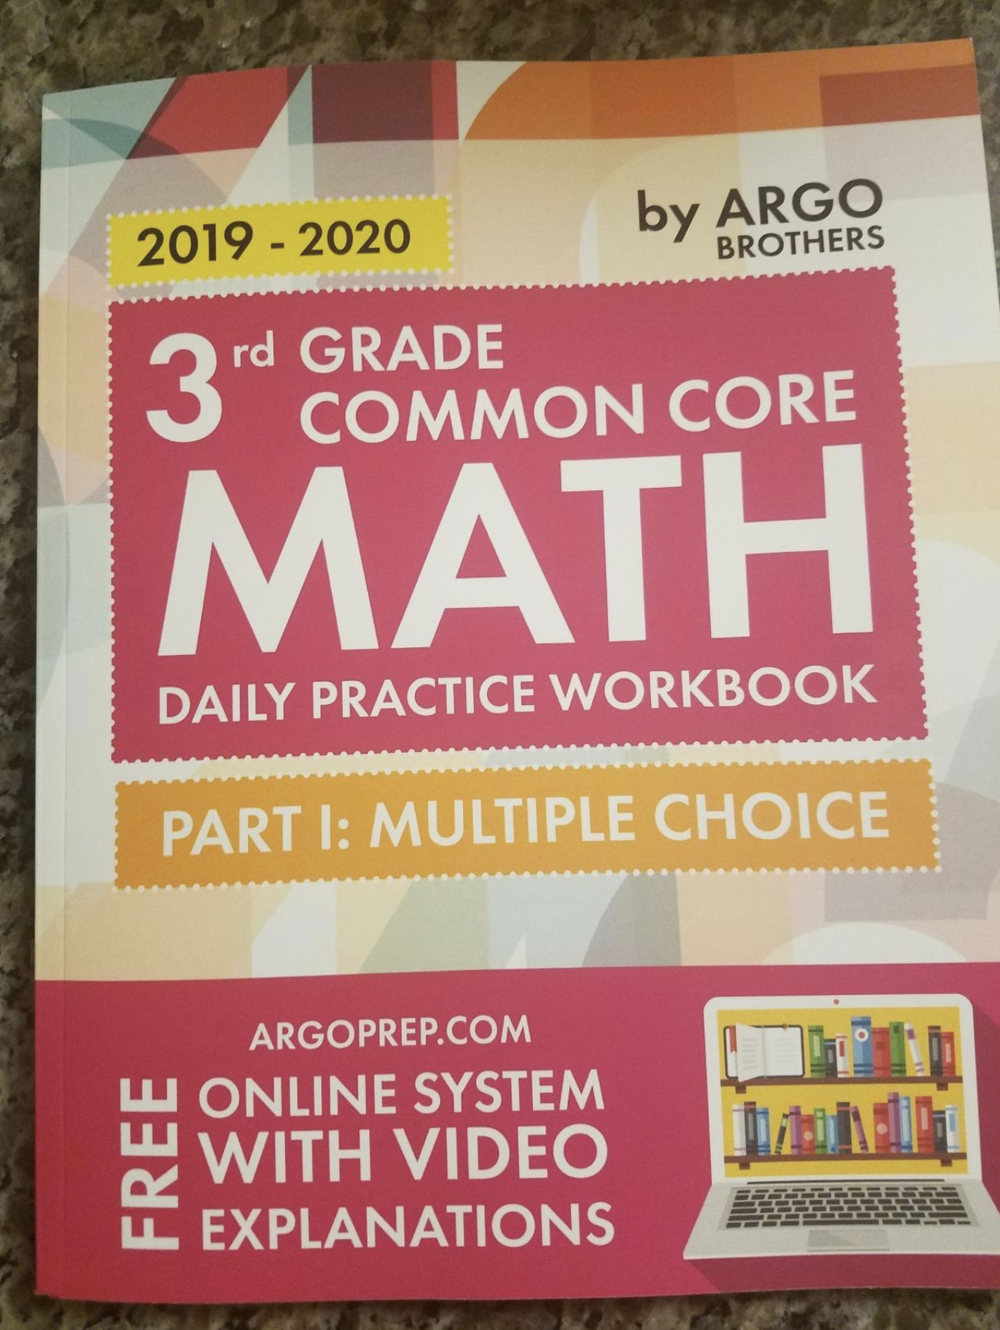 Nadya - I love these series of math books. My children find them very informative and interesting that have lots of very good math problems. The book's of very high quality too.